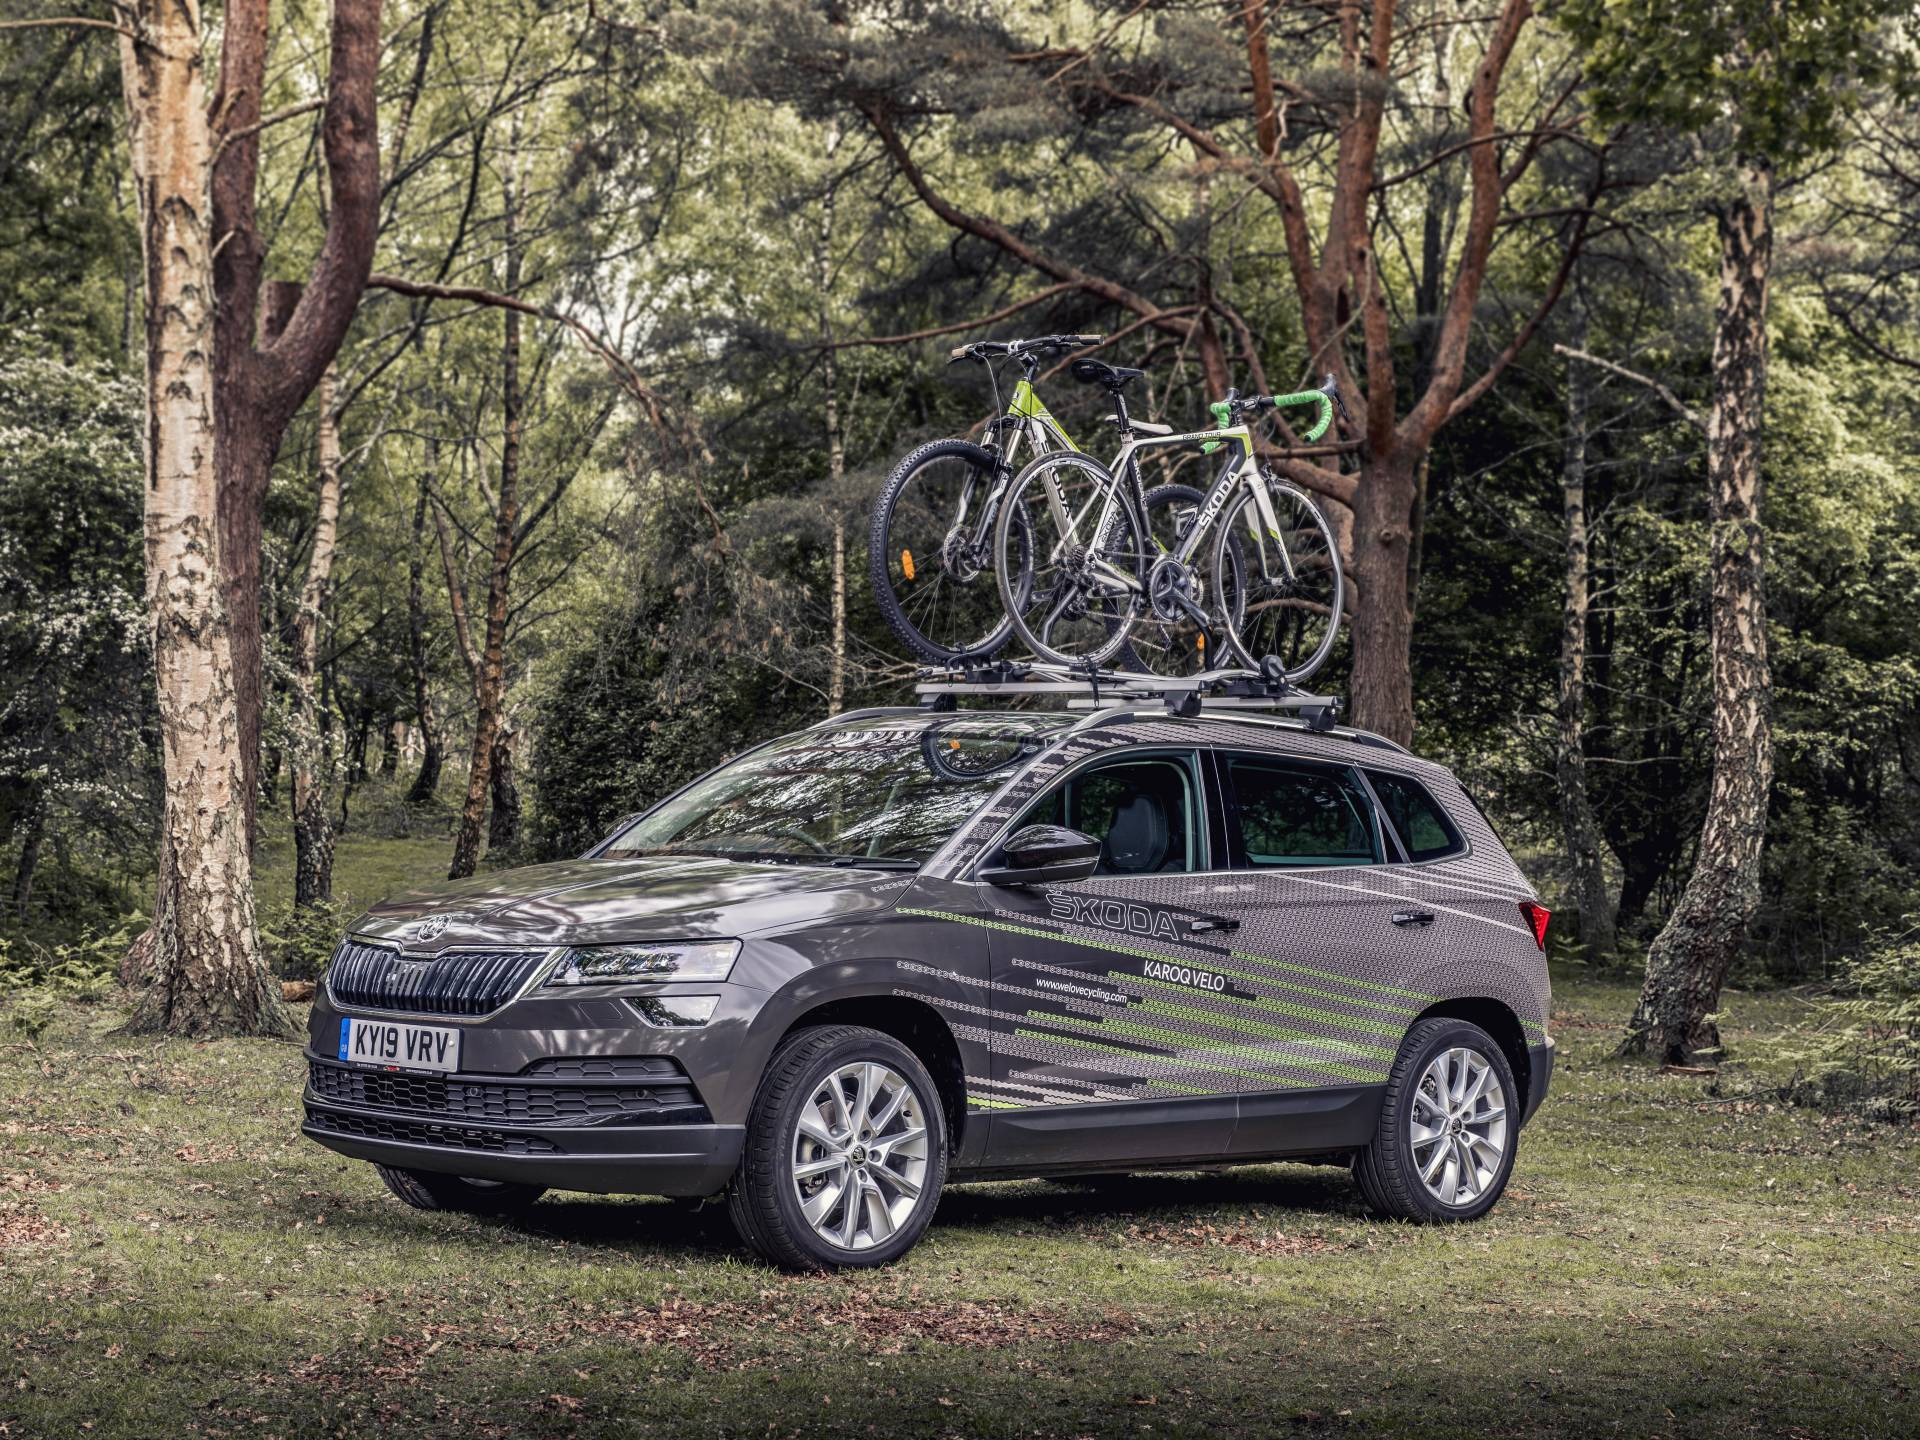 Skoda-Karoq-Velo-one-off-3